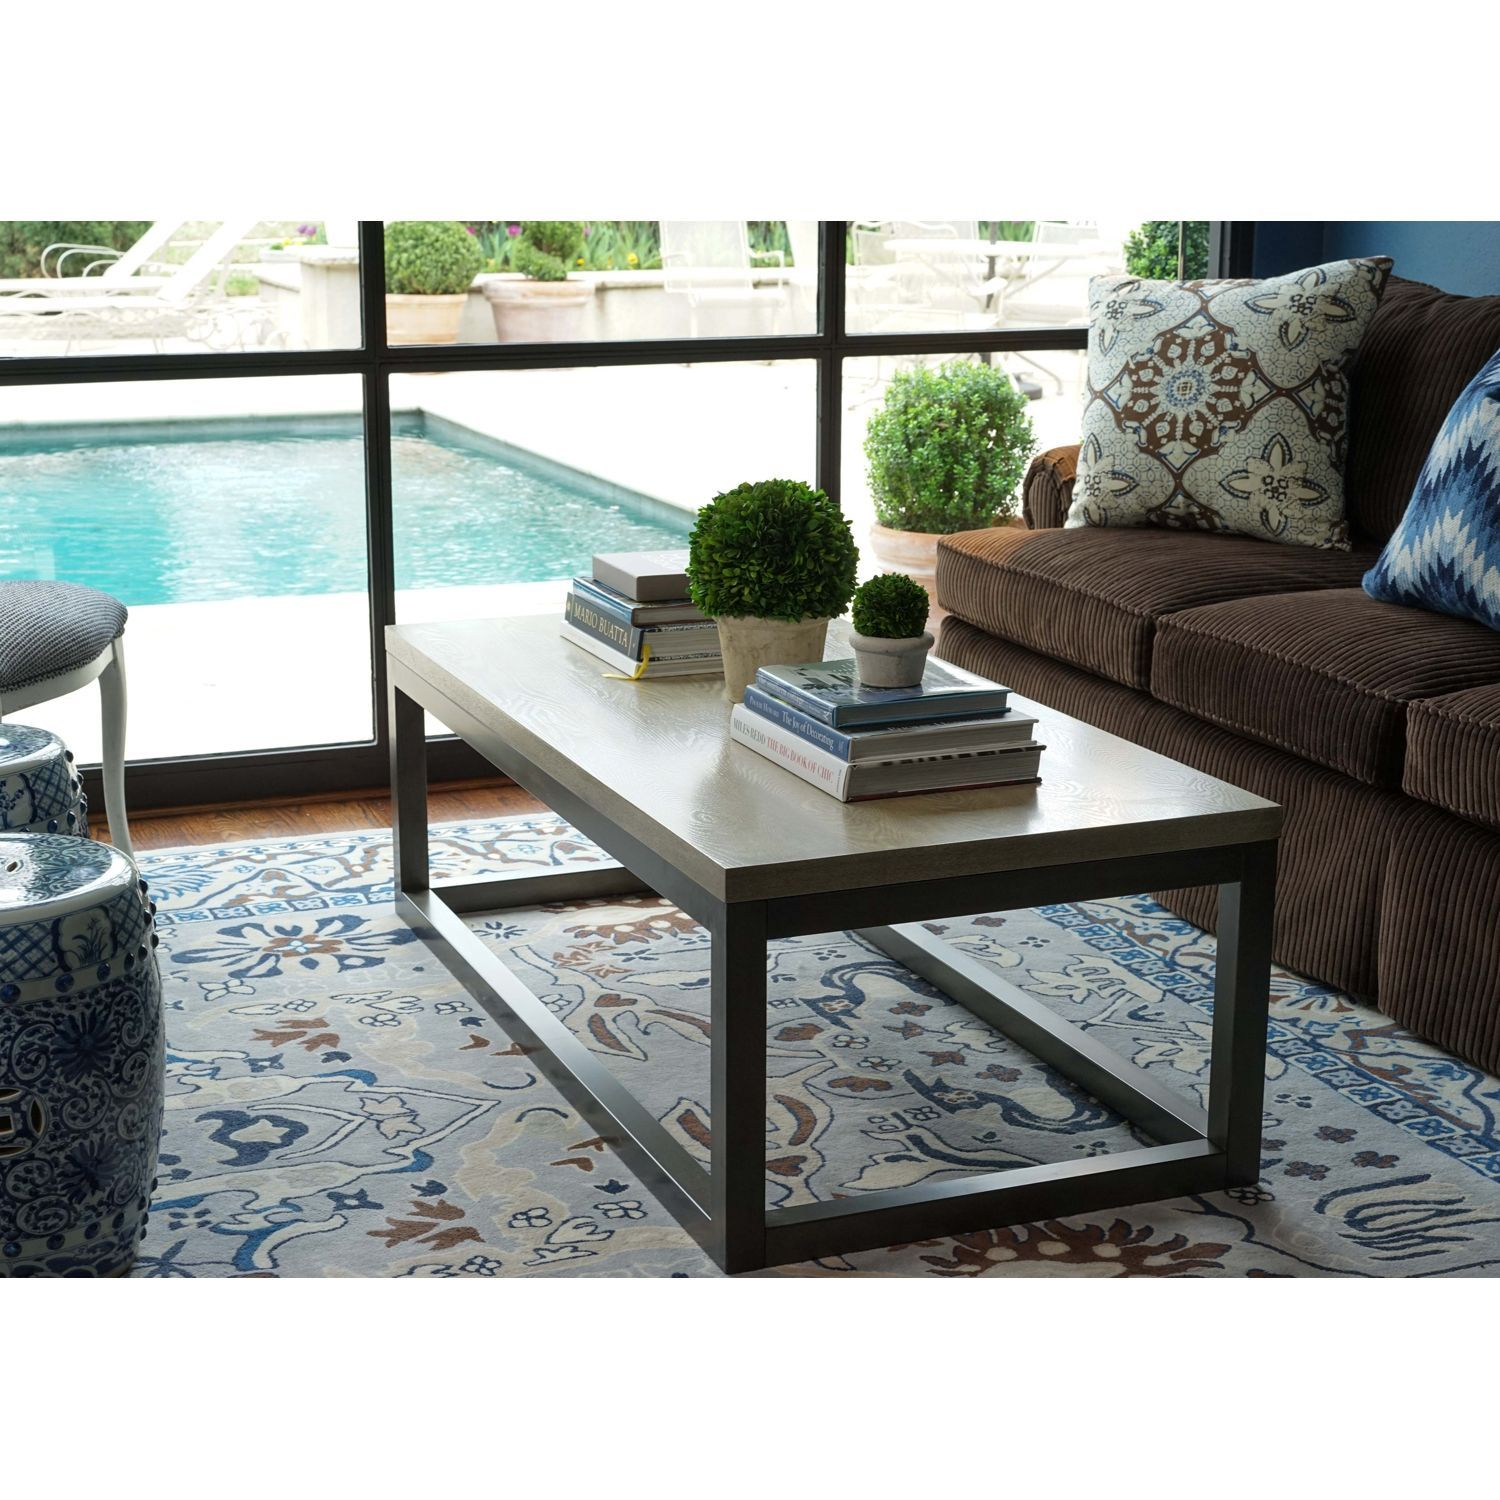 Crosby Natural Wood Coffee Table Pier 1 Imports Coffee Table Natural Wood Coffee Table Coffee Table Wood [ 1500 x 1500 Pixel ]